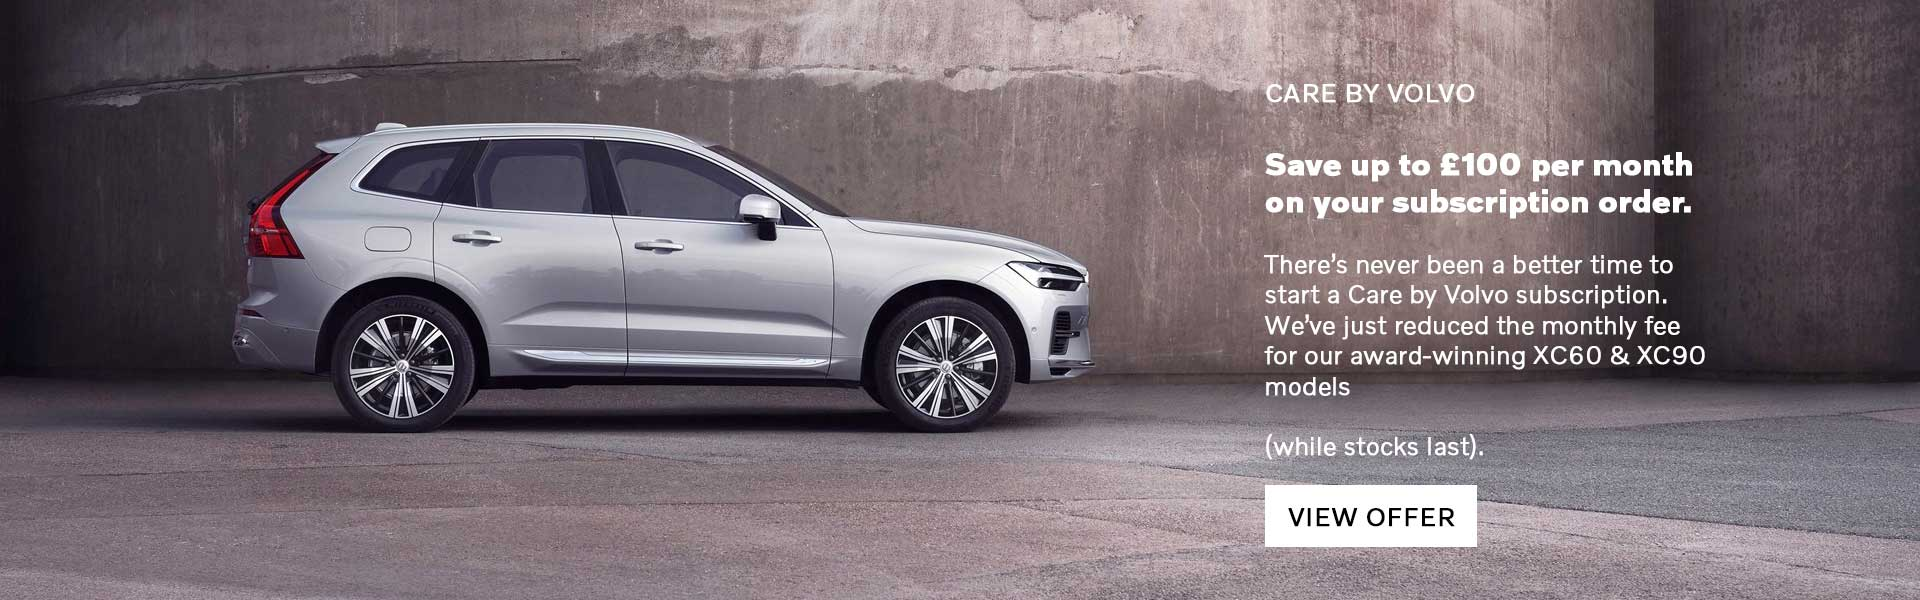 XC60 & XC90 Care By Volvo